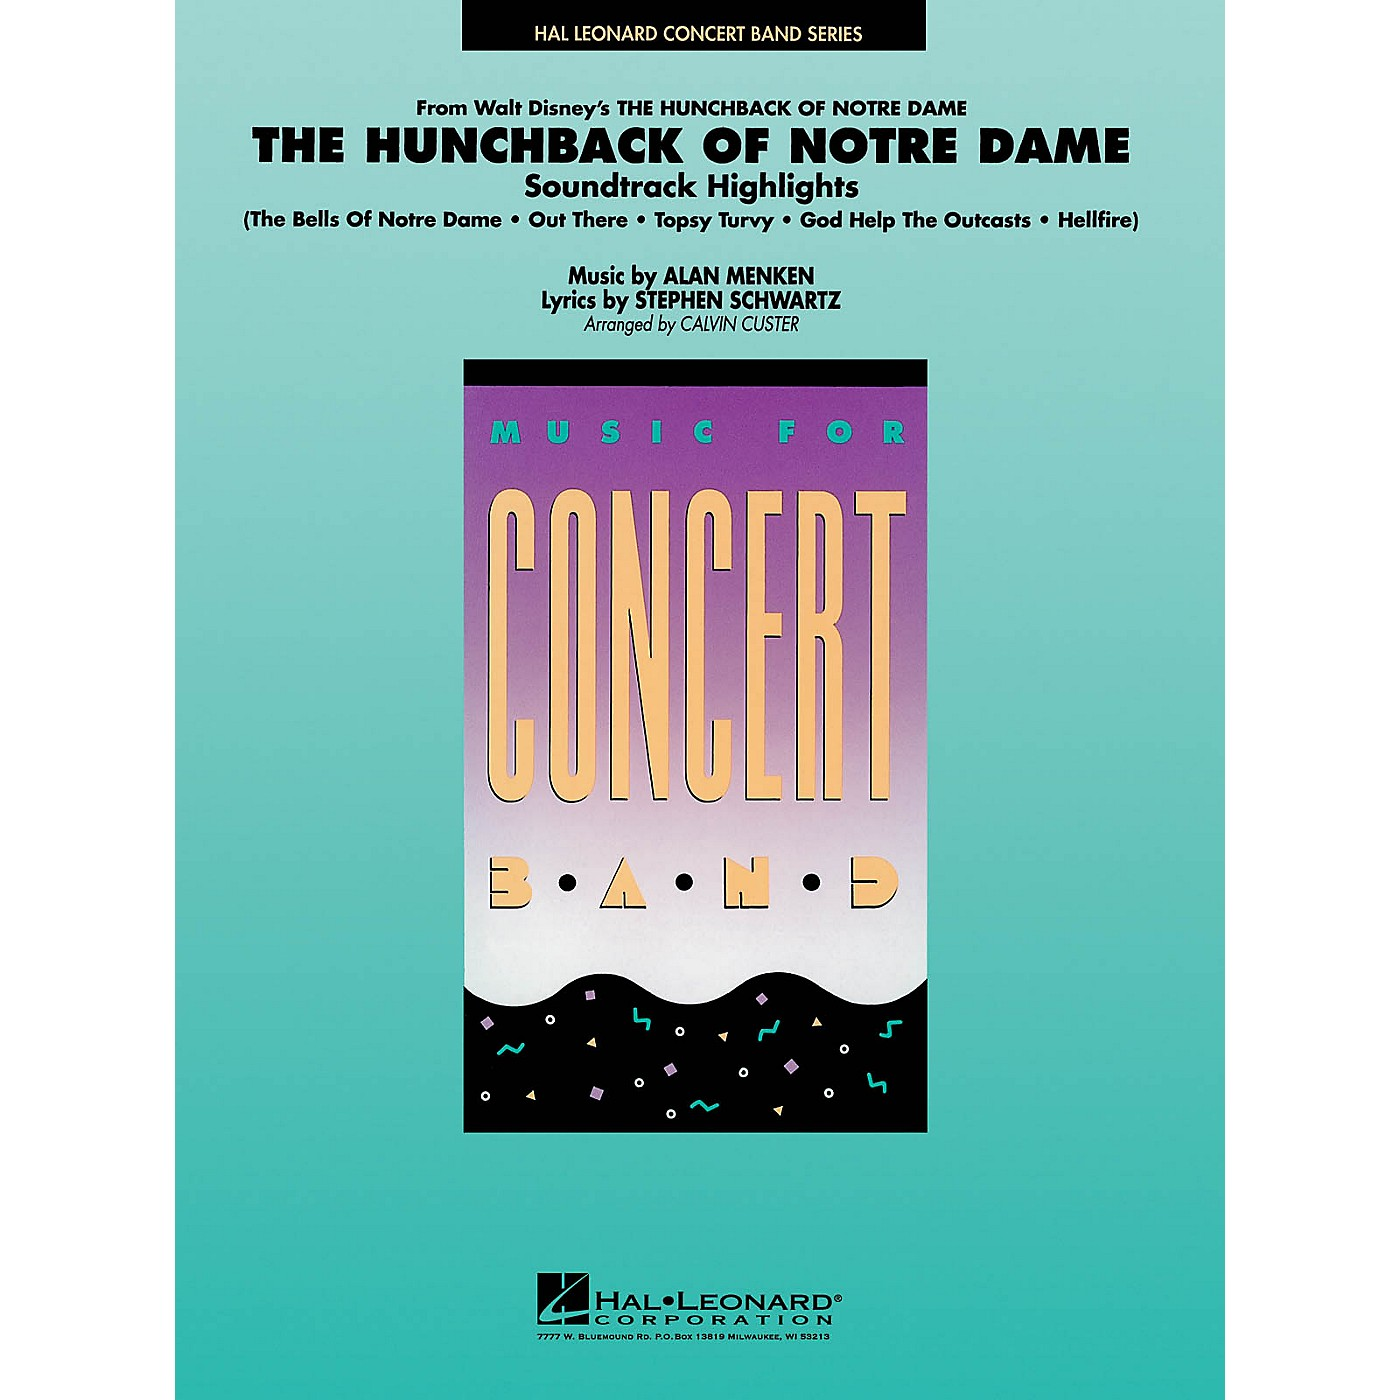 Hal Leonard Highlights from Hunchback of Notre Dame Concert Band Level 4 Arranged by Calvin Custer thumbnail